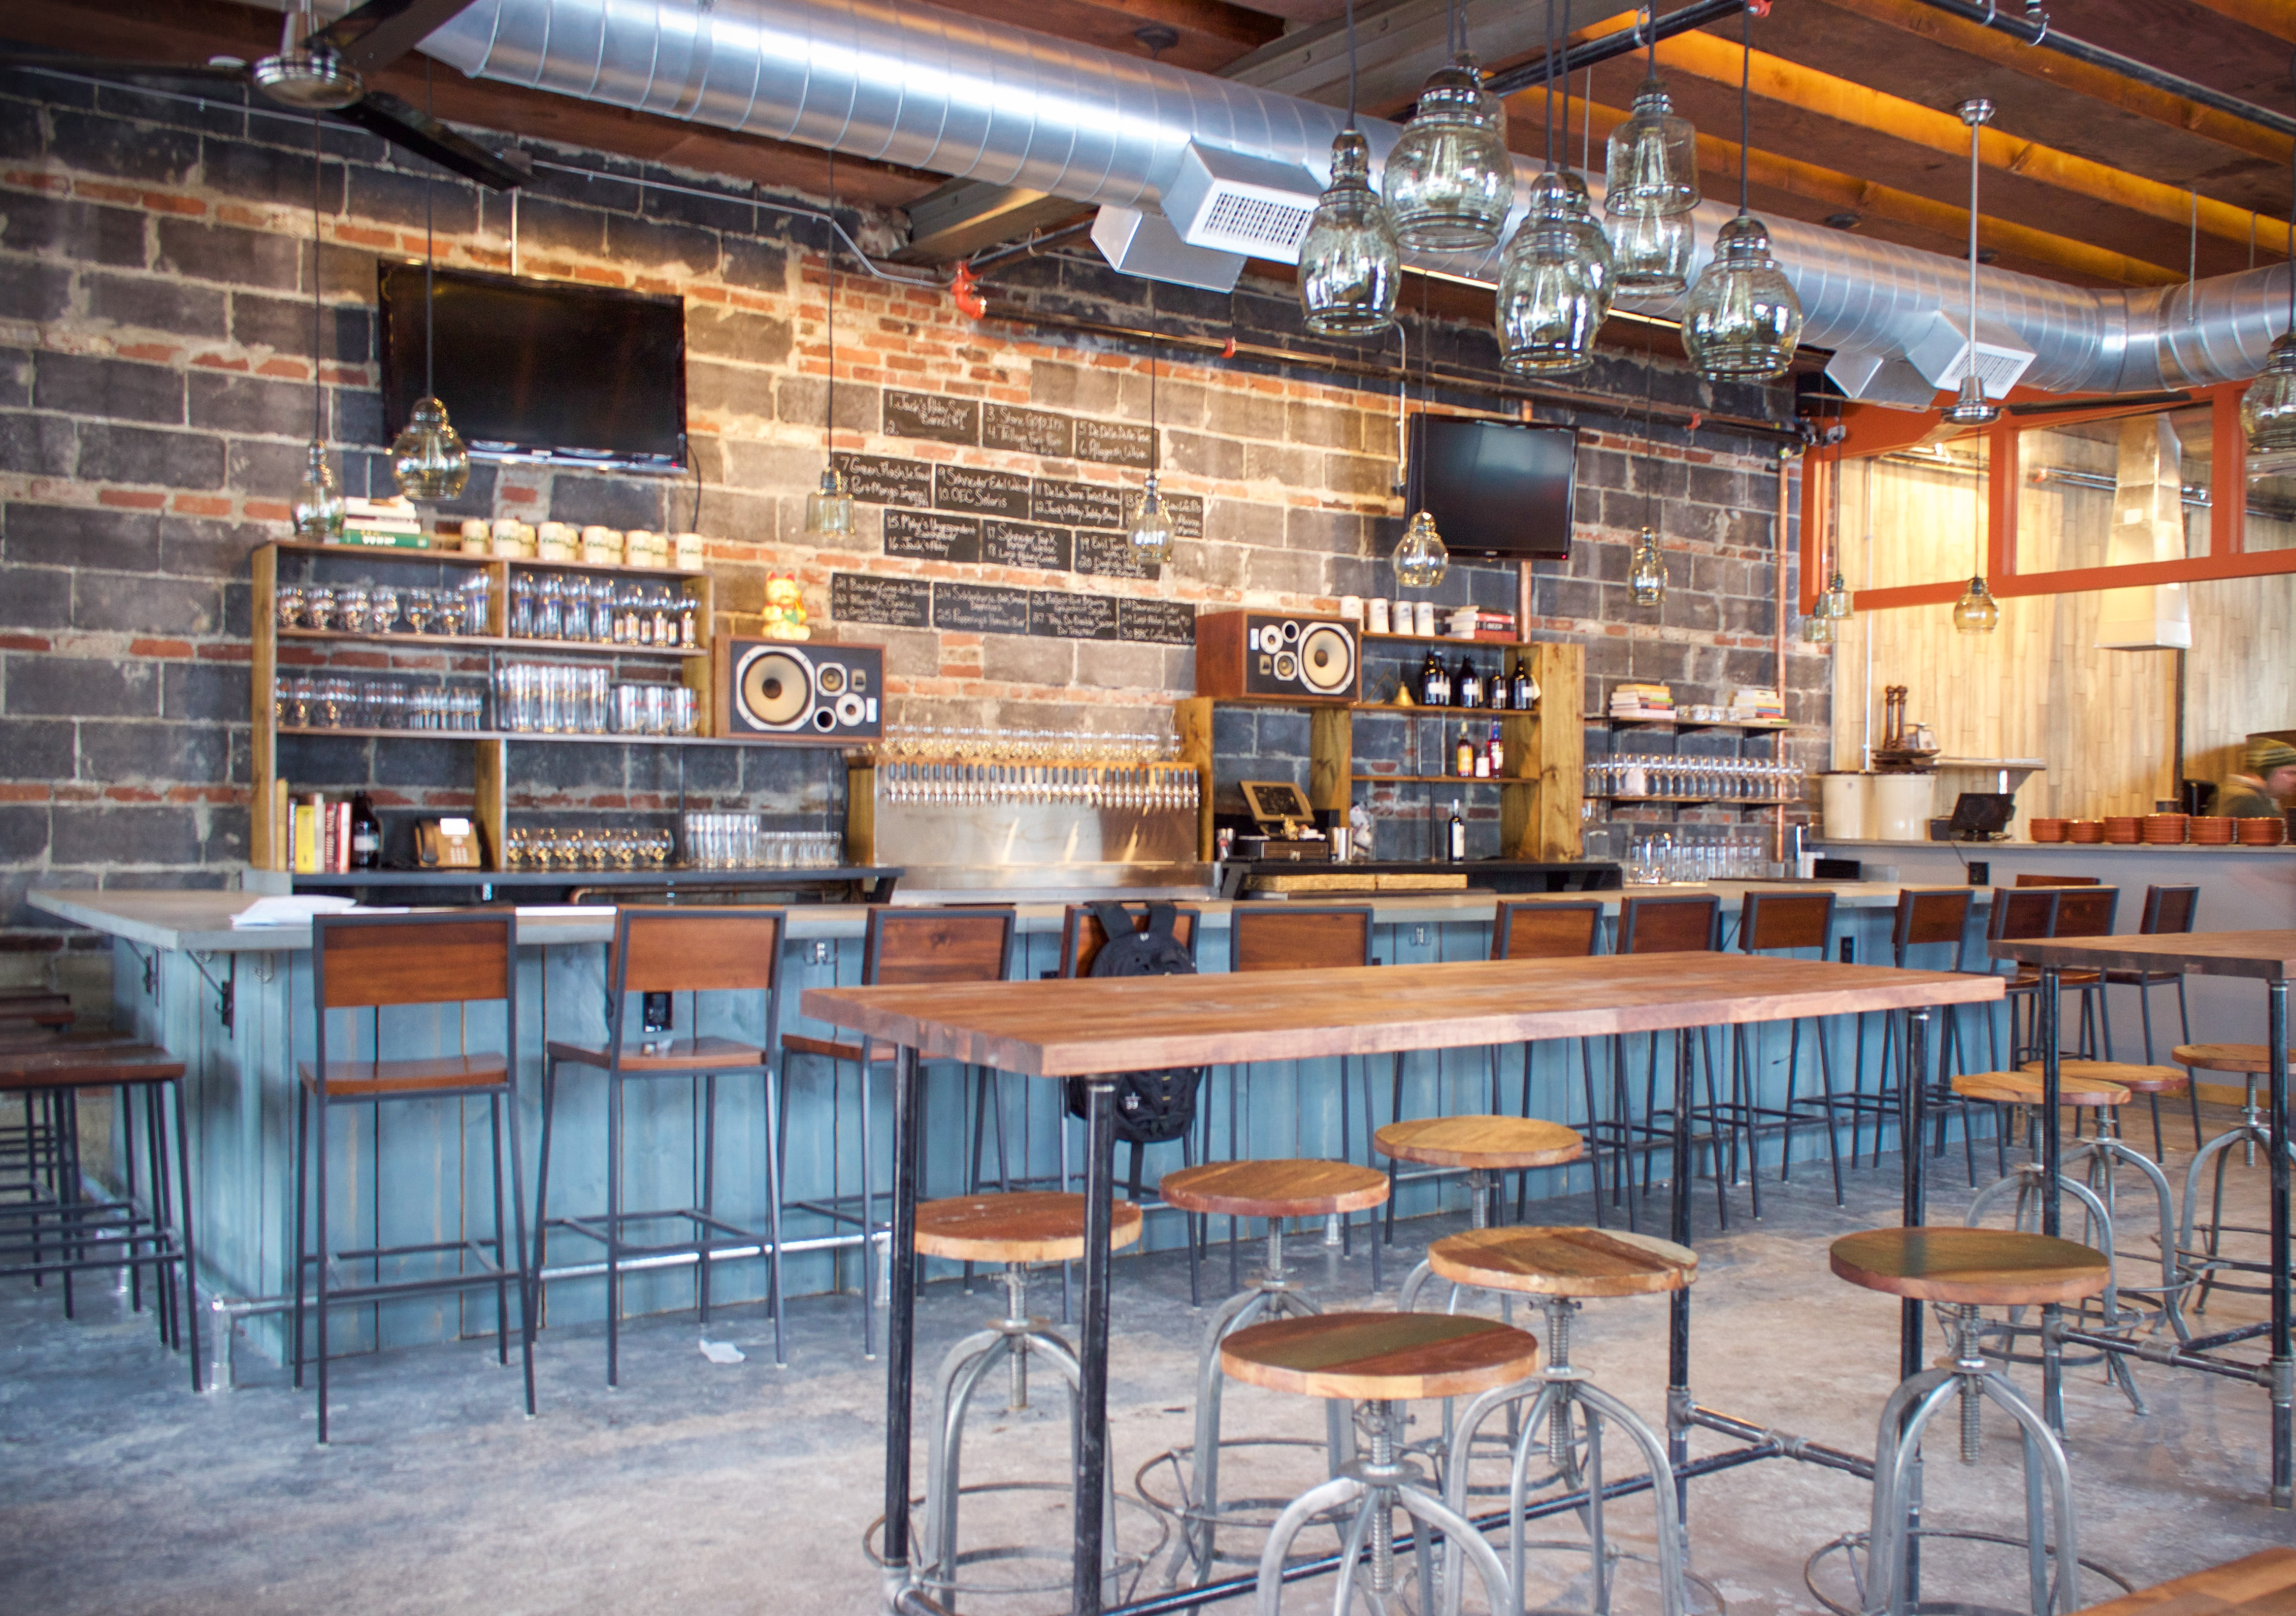 Photo of a restaurant interior, focusing on the bar and high-top tables in front of it. The wall is mostly large gray bricks. Tables and chairs are a medium-colored wood.